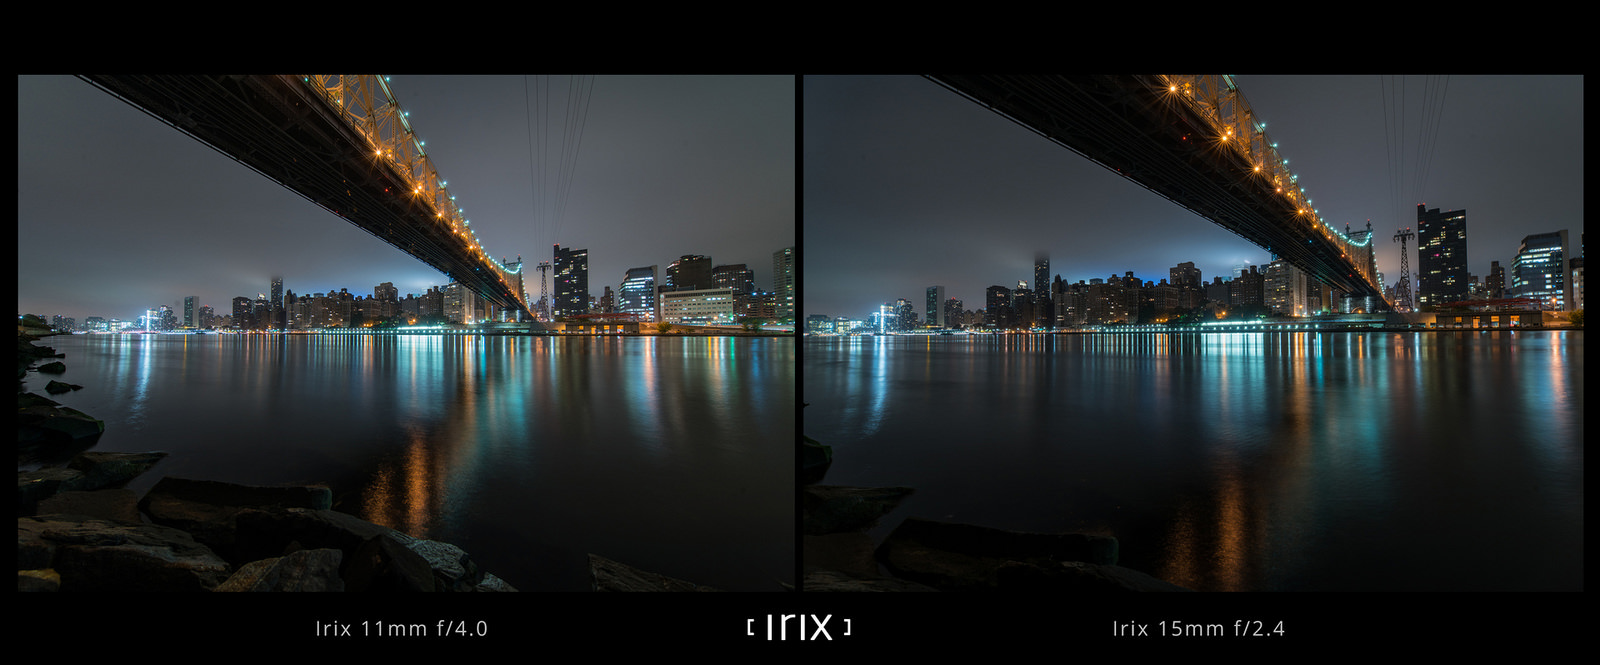 Irix 11mm F 4 Wide Angle Lens Samples And Videos Daily